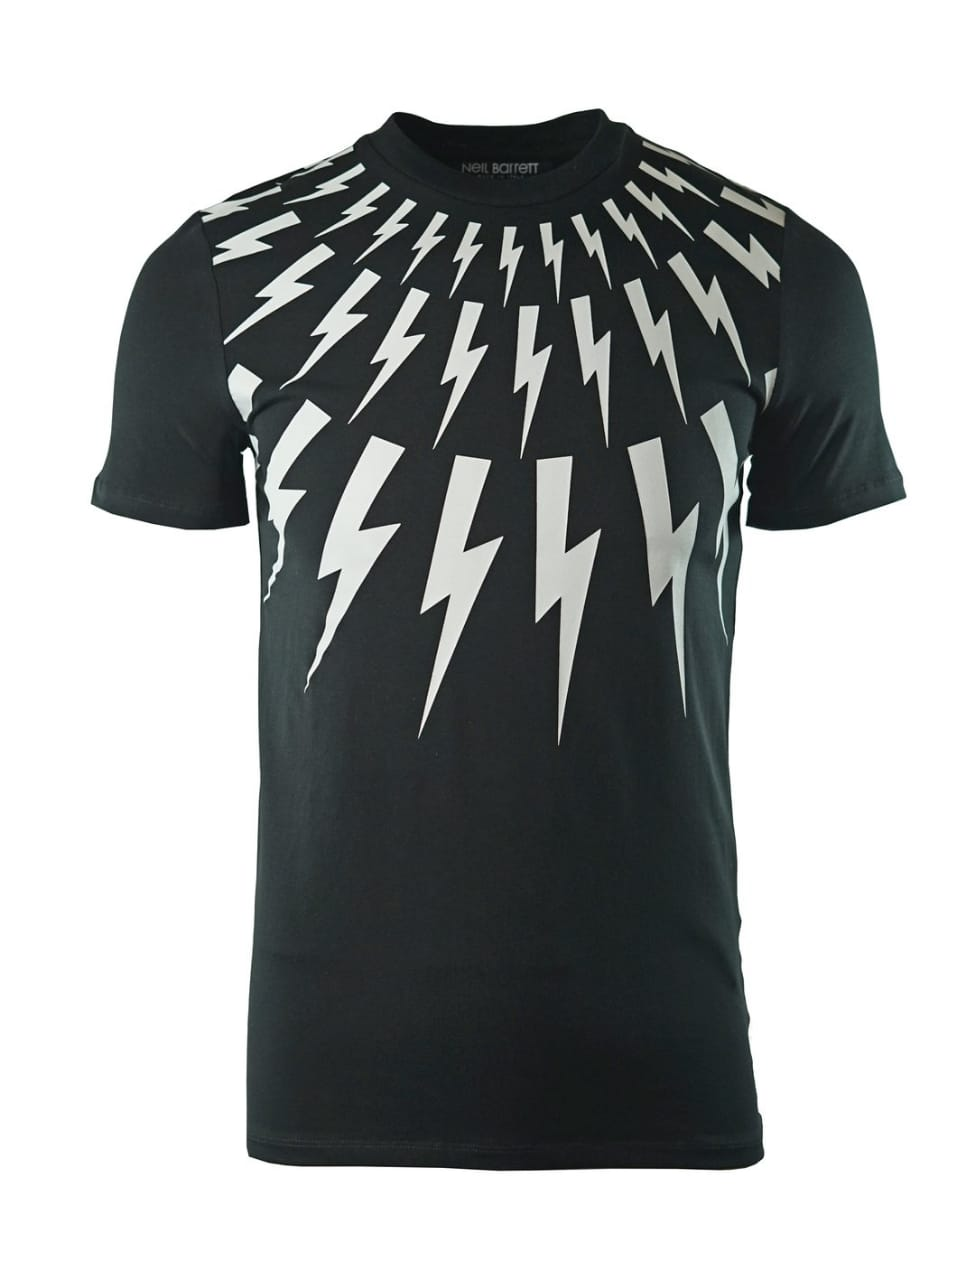 Neil Barrett PBJ442F H556S 524 Black T-Shirt